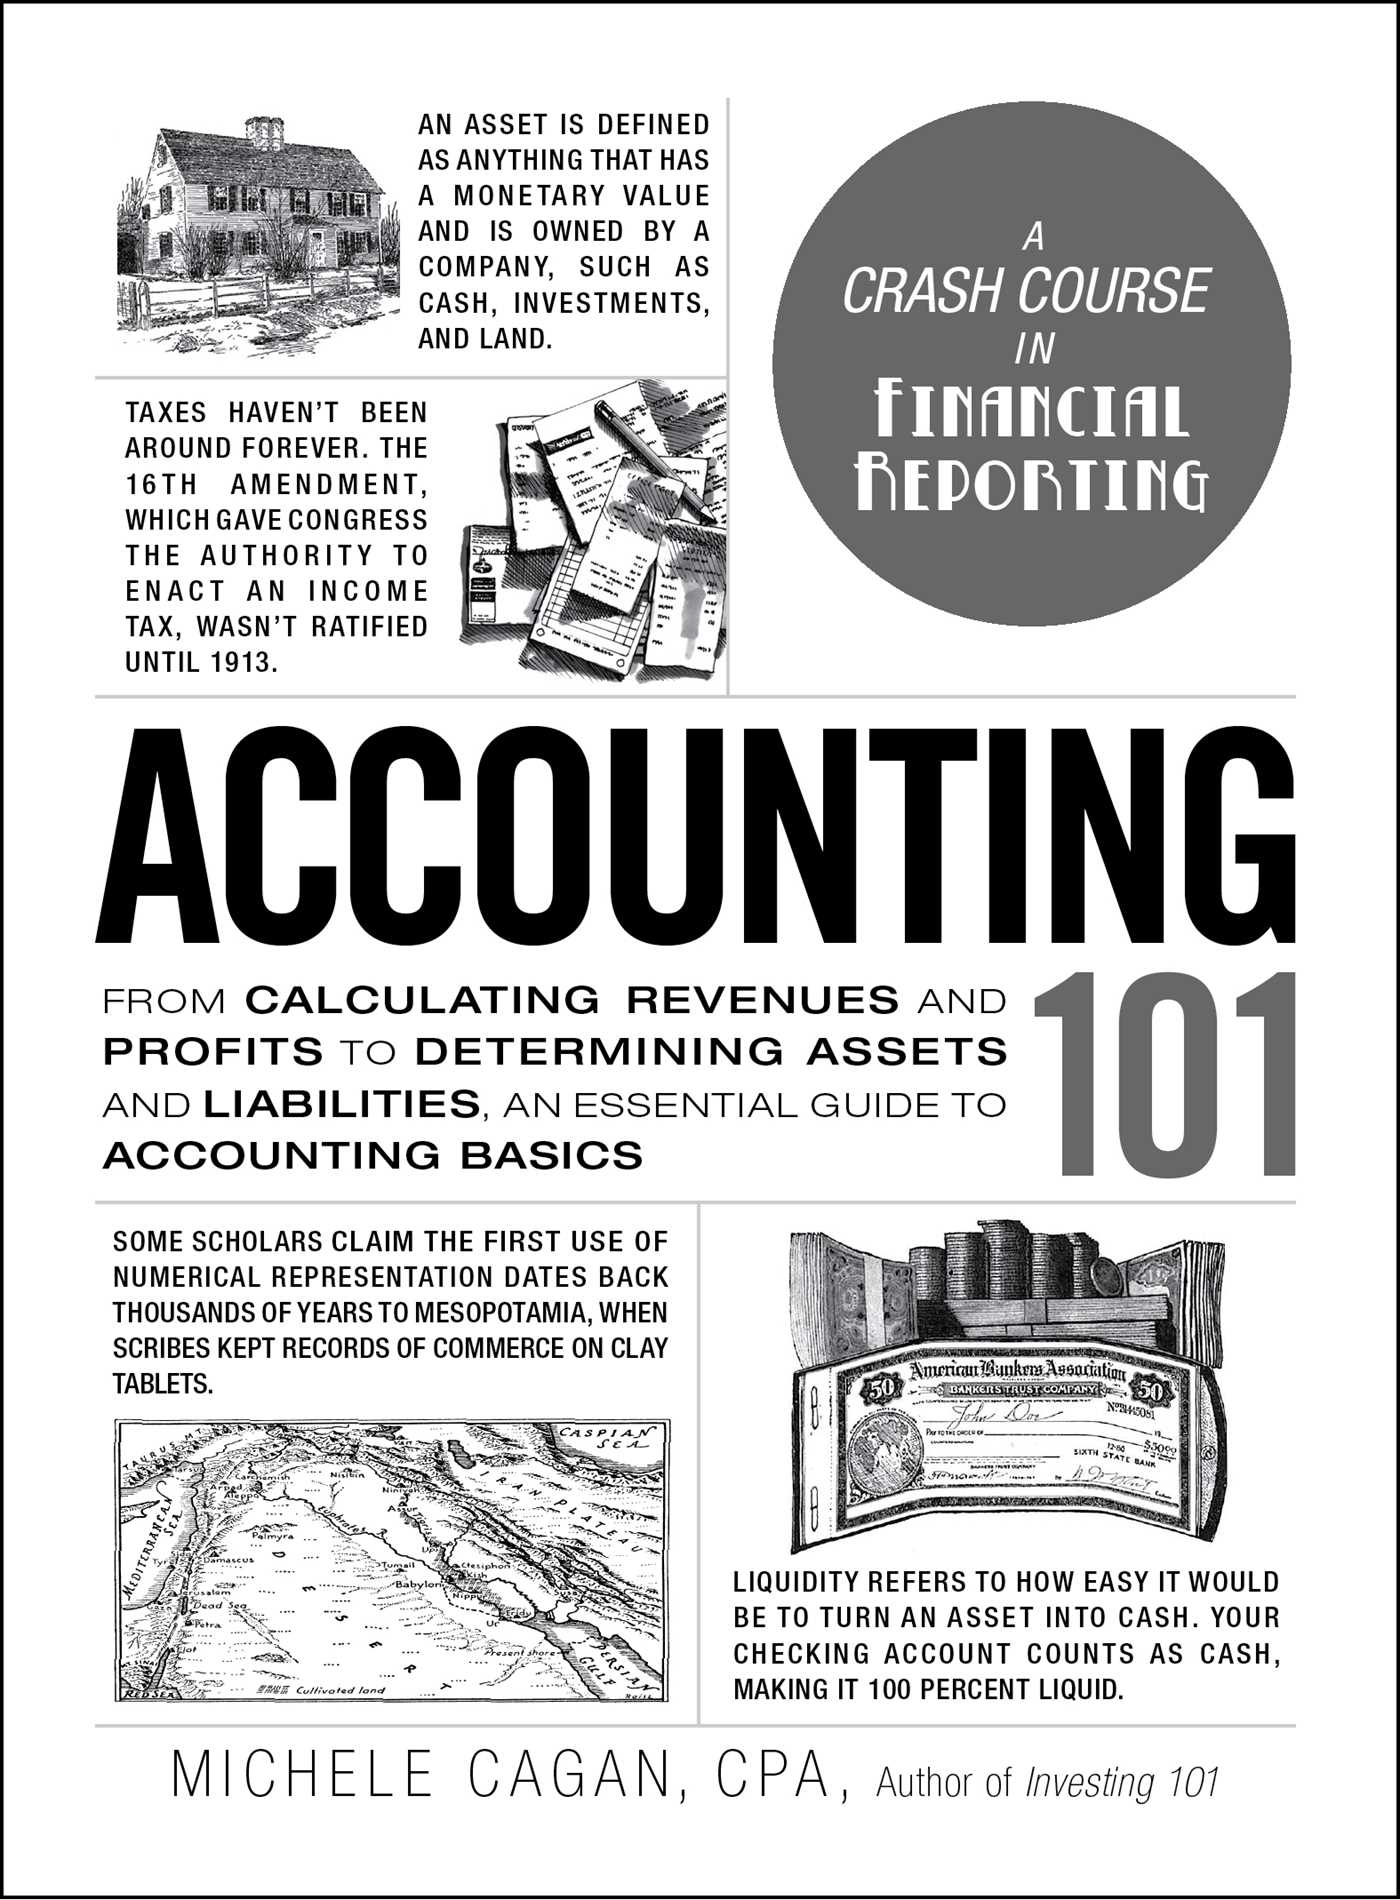 Accounting 101 From Calculating Revenues and Profits to Determining Assets and Liabilities, an Essential Guide to Accounting Basics